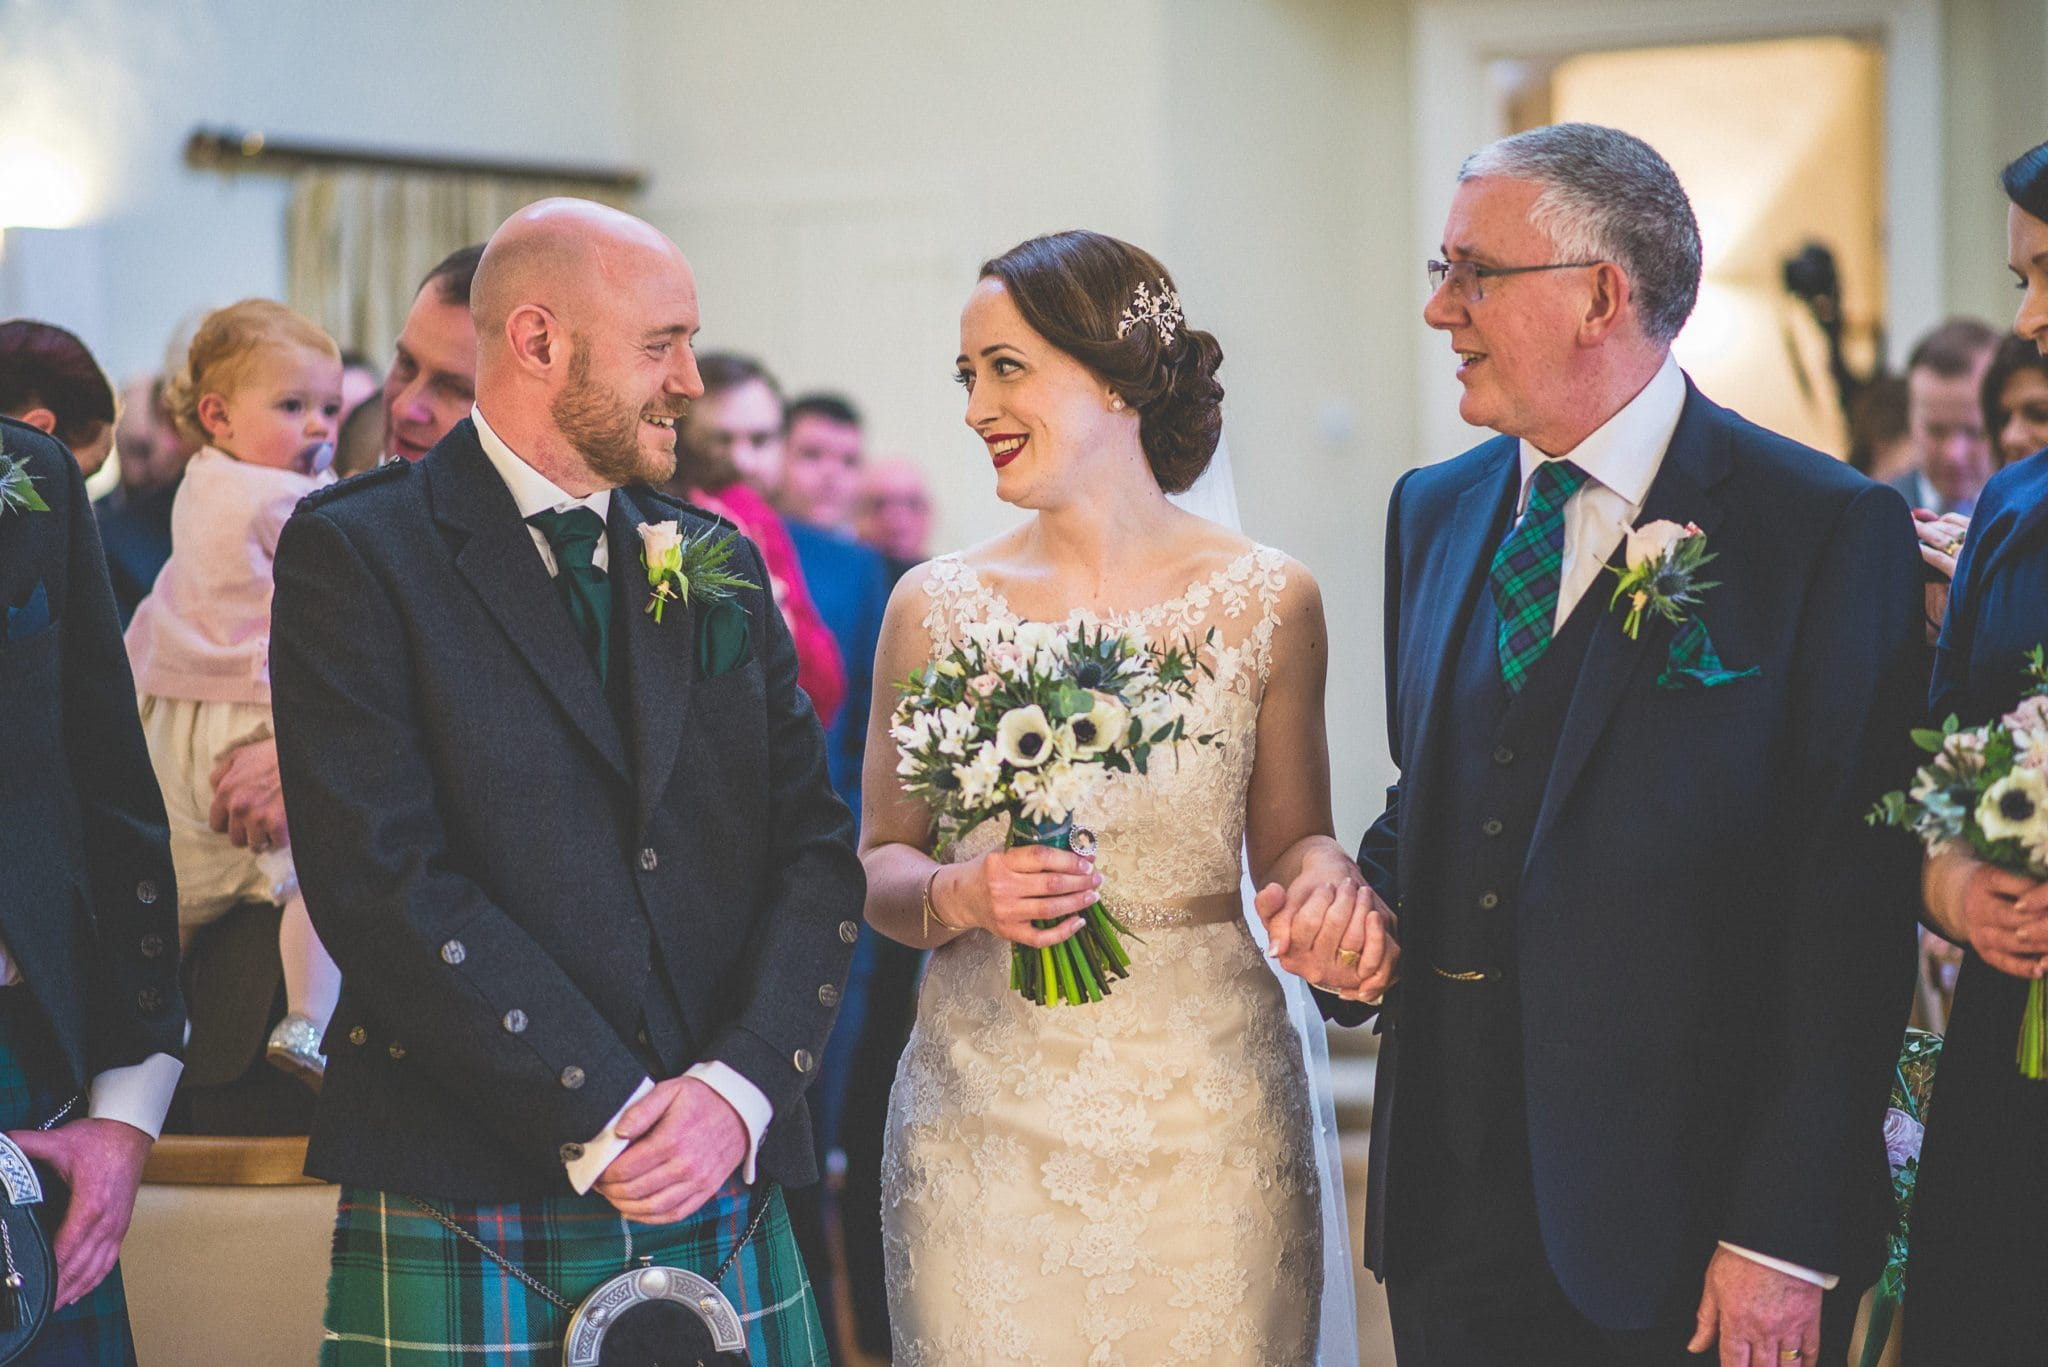 The father of the bride gives his daughter away to be married